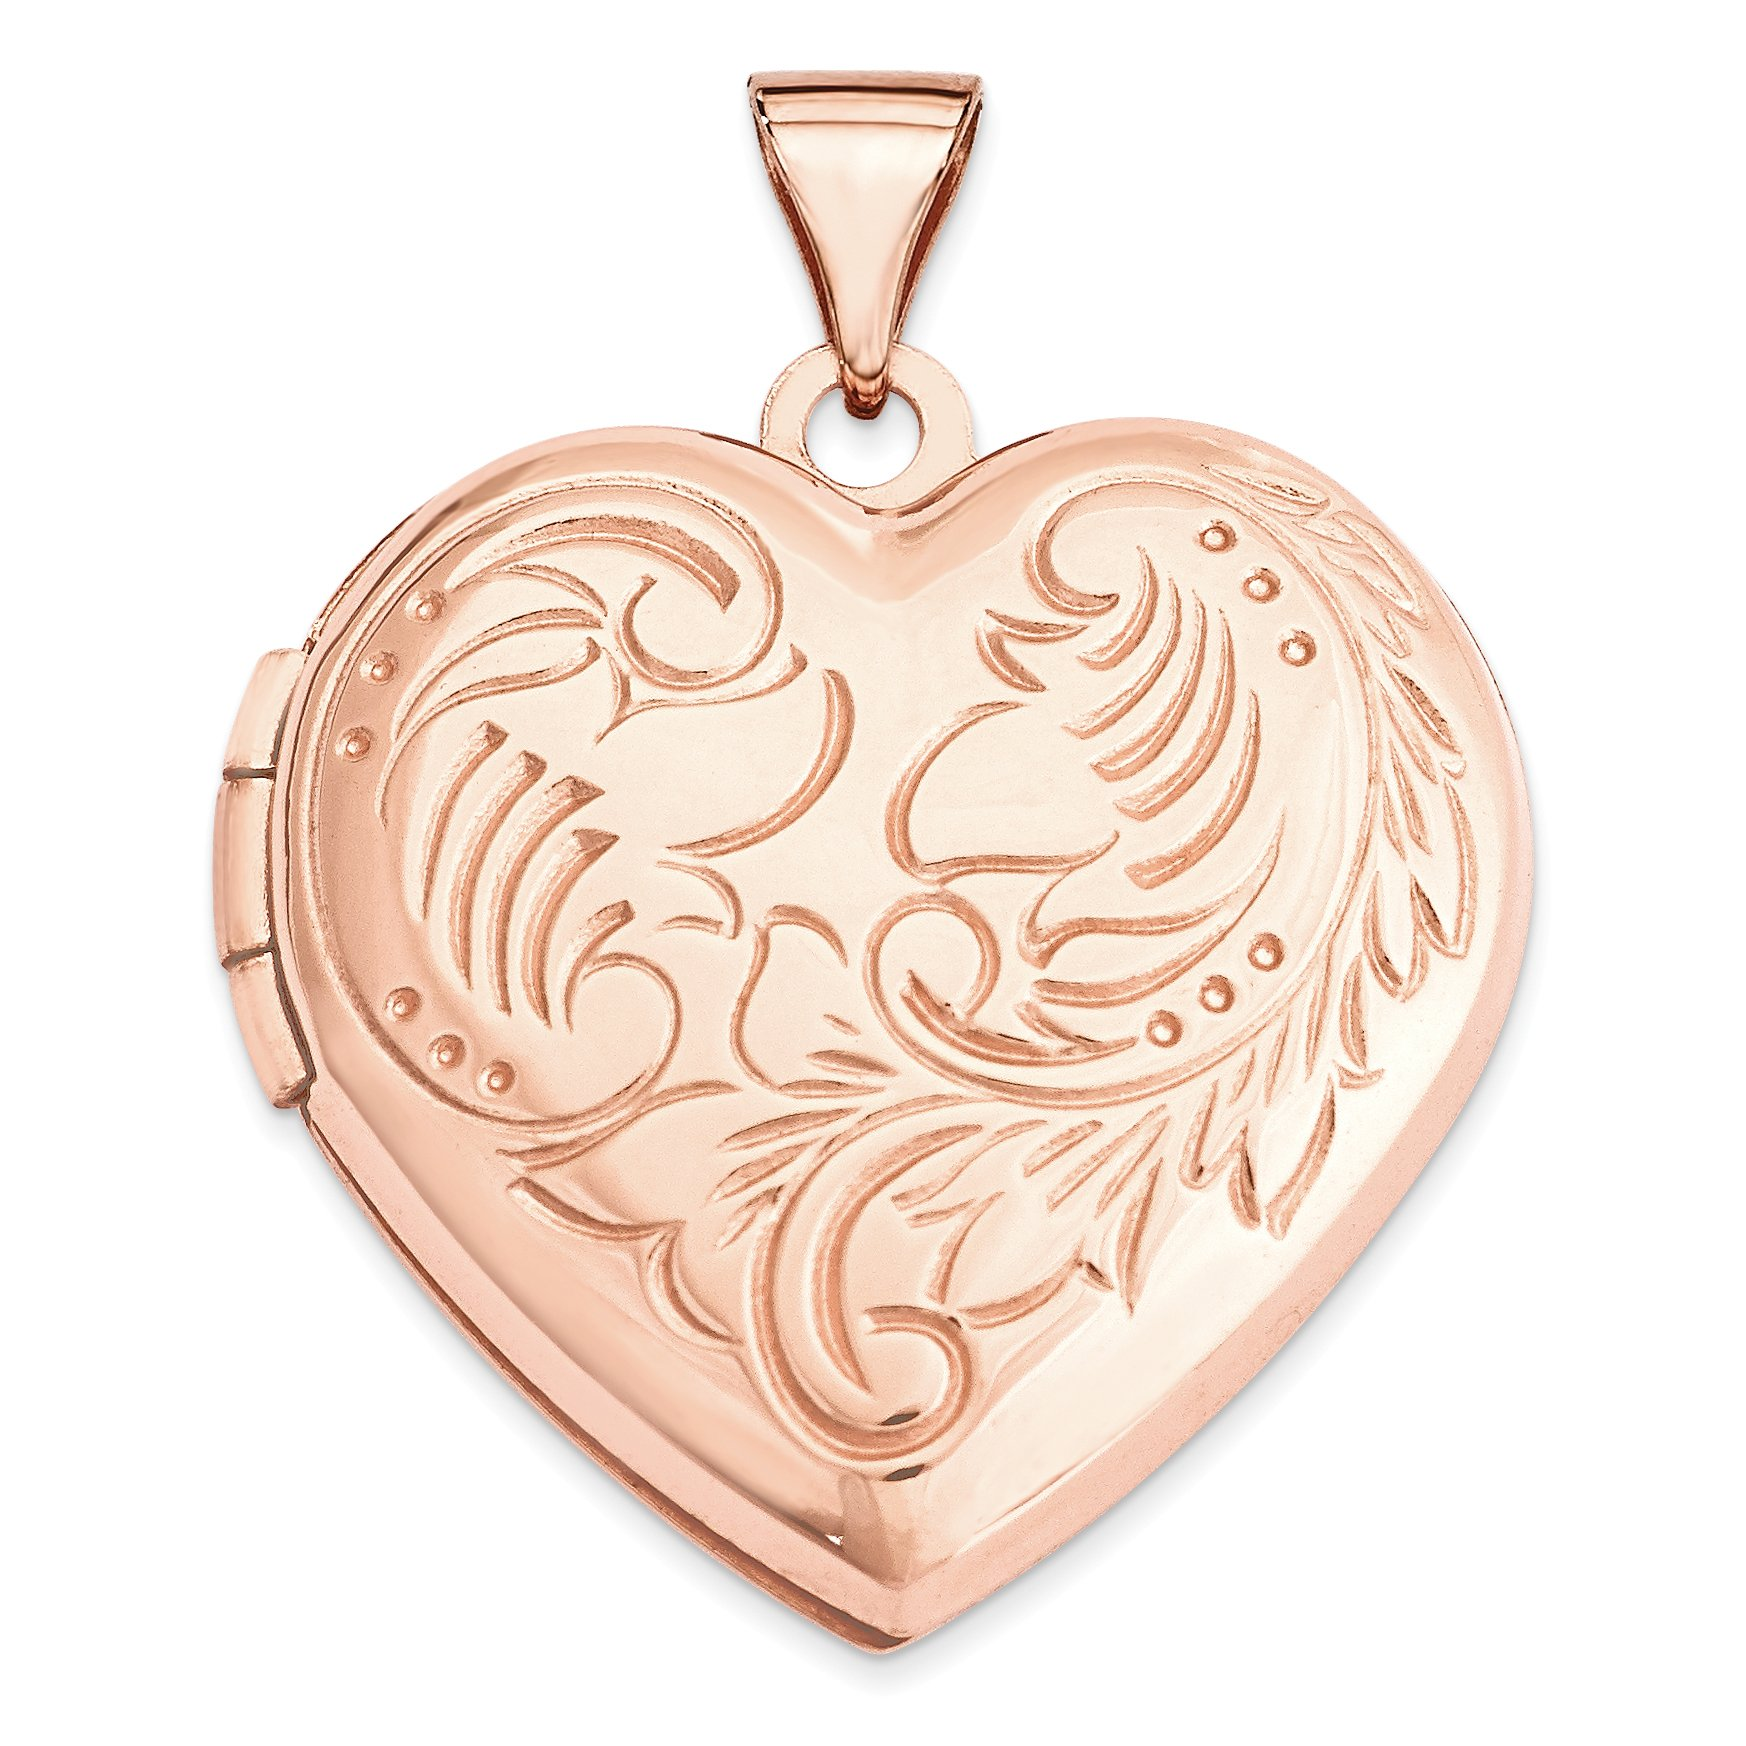 ICE CARATS 14k Rose Gold 21mm Domed Heart Photo Pendant Charm Locket Chain Necklace That Holds Pictures Fine Jewelry Gift Set For Women Heart